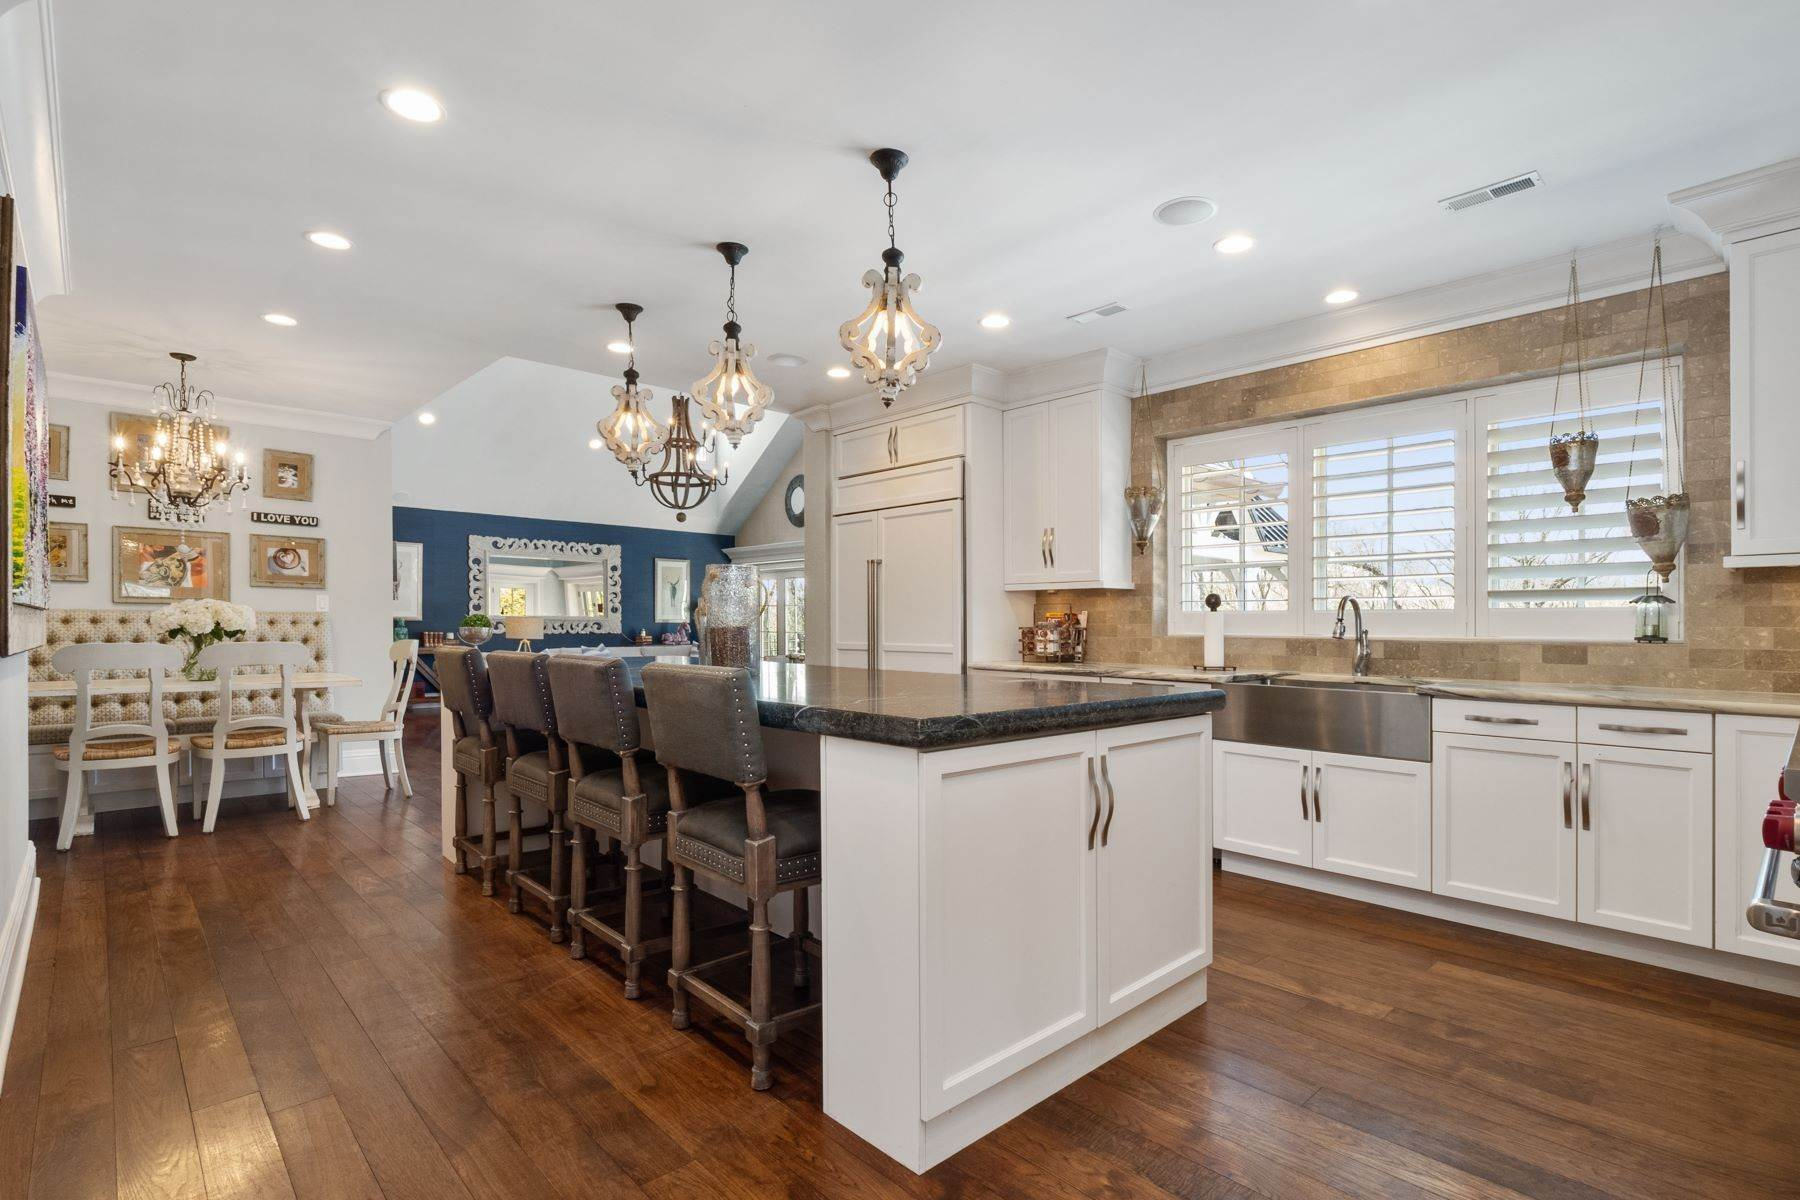 7. Single Family Homes for Sale at Modern Sophisticated Living in the Heart of Ladue 40 Overhills Dr Ladue, Missouri 63124 United States